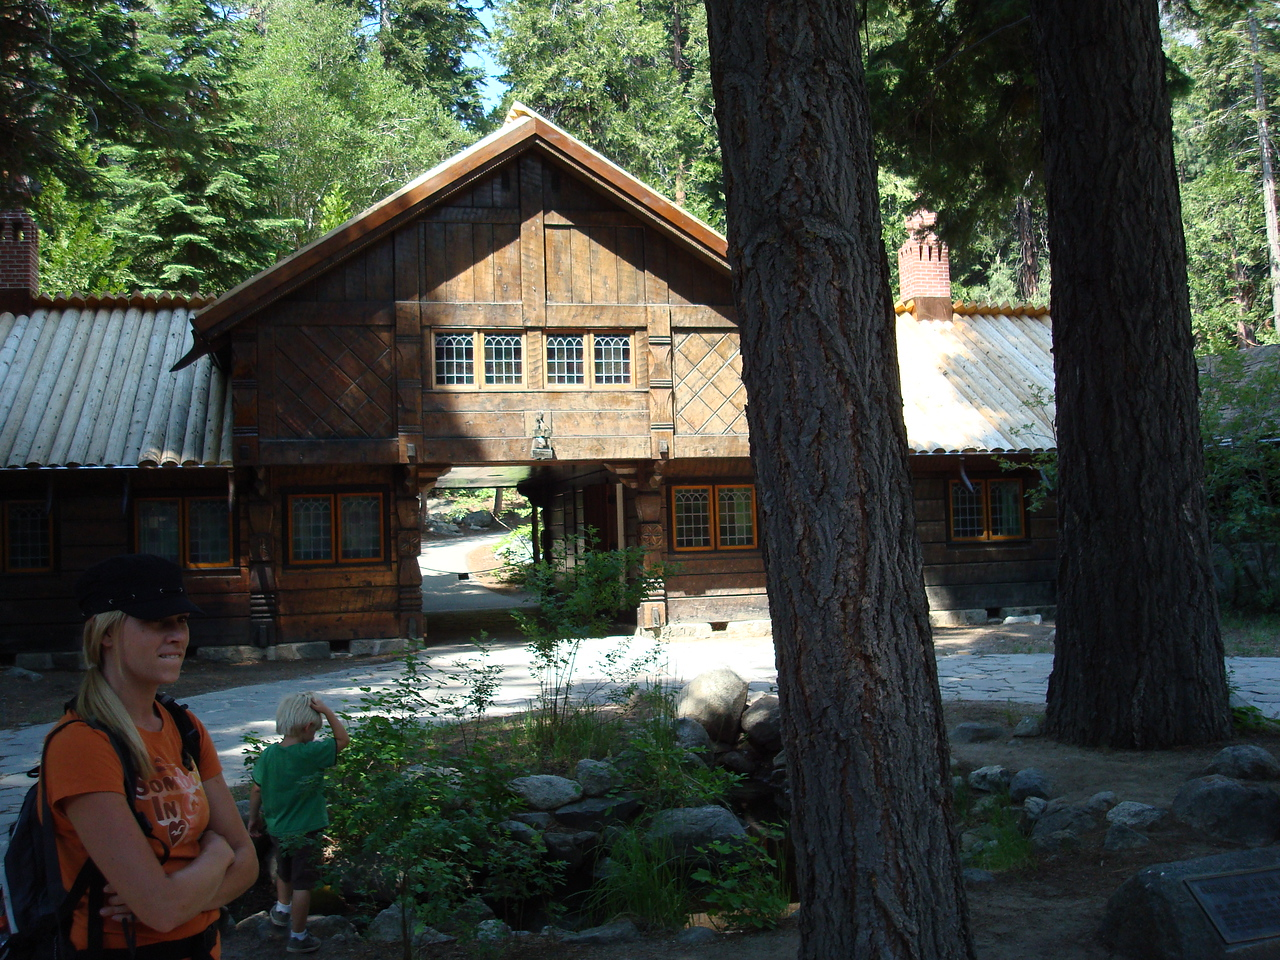 courtyard at Vikingsholm, Lake Tahoe, CA.  (2008)